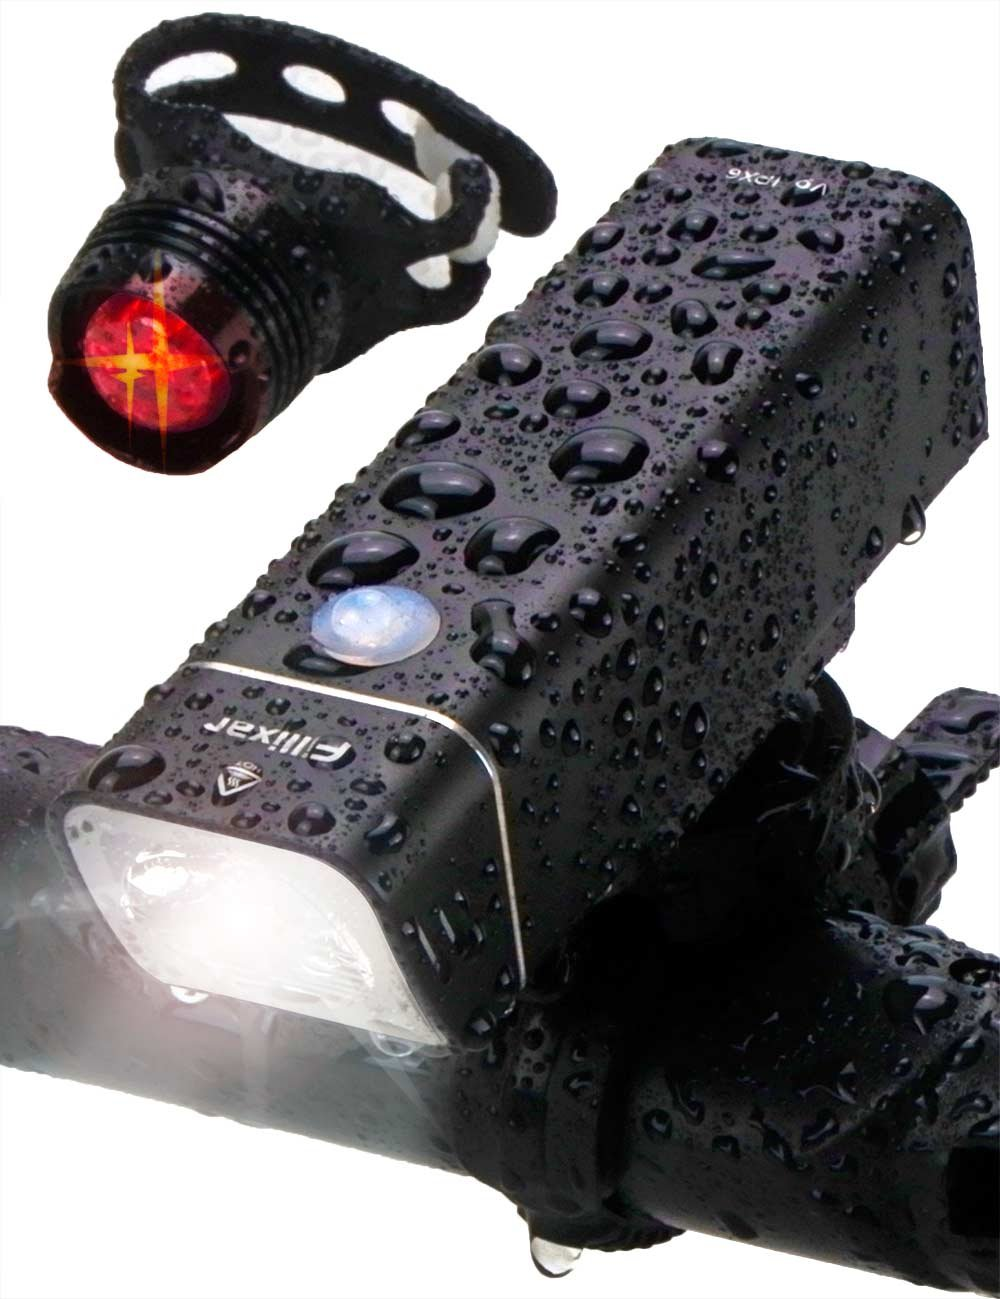 Fillixar USB Rechargeable Bike Light Front 600 Lumens, Bicycle Light Set with Rear Bike Light Included